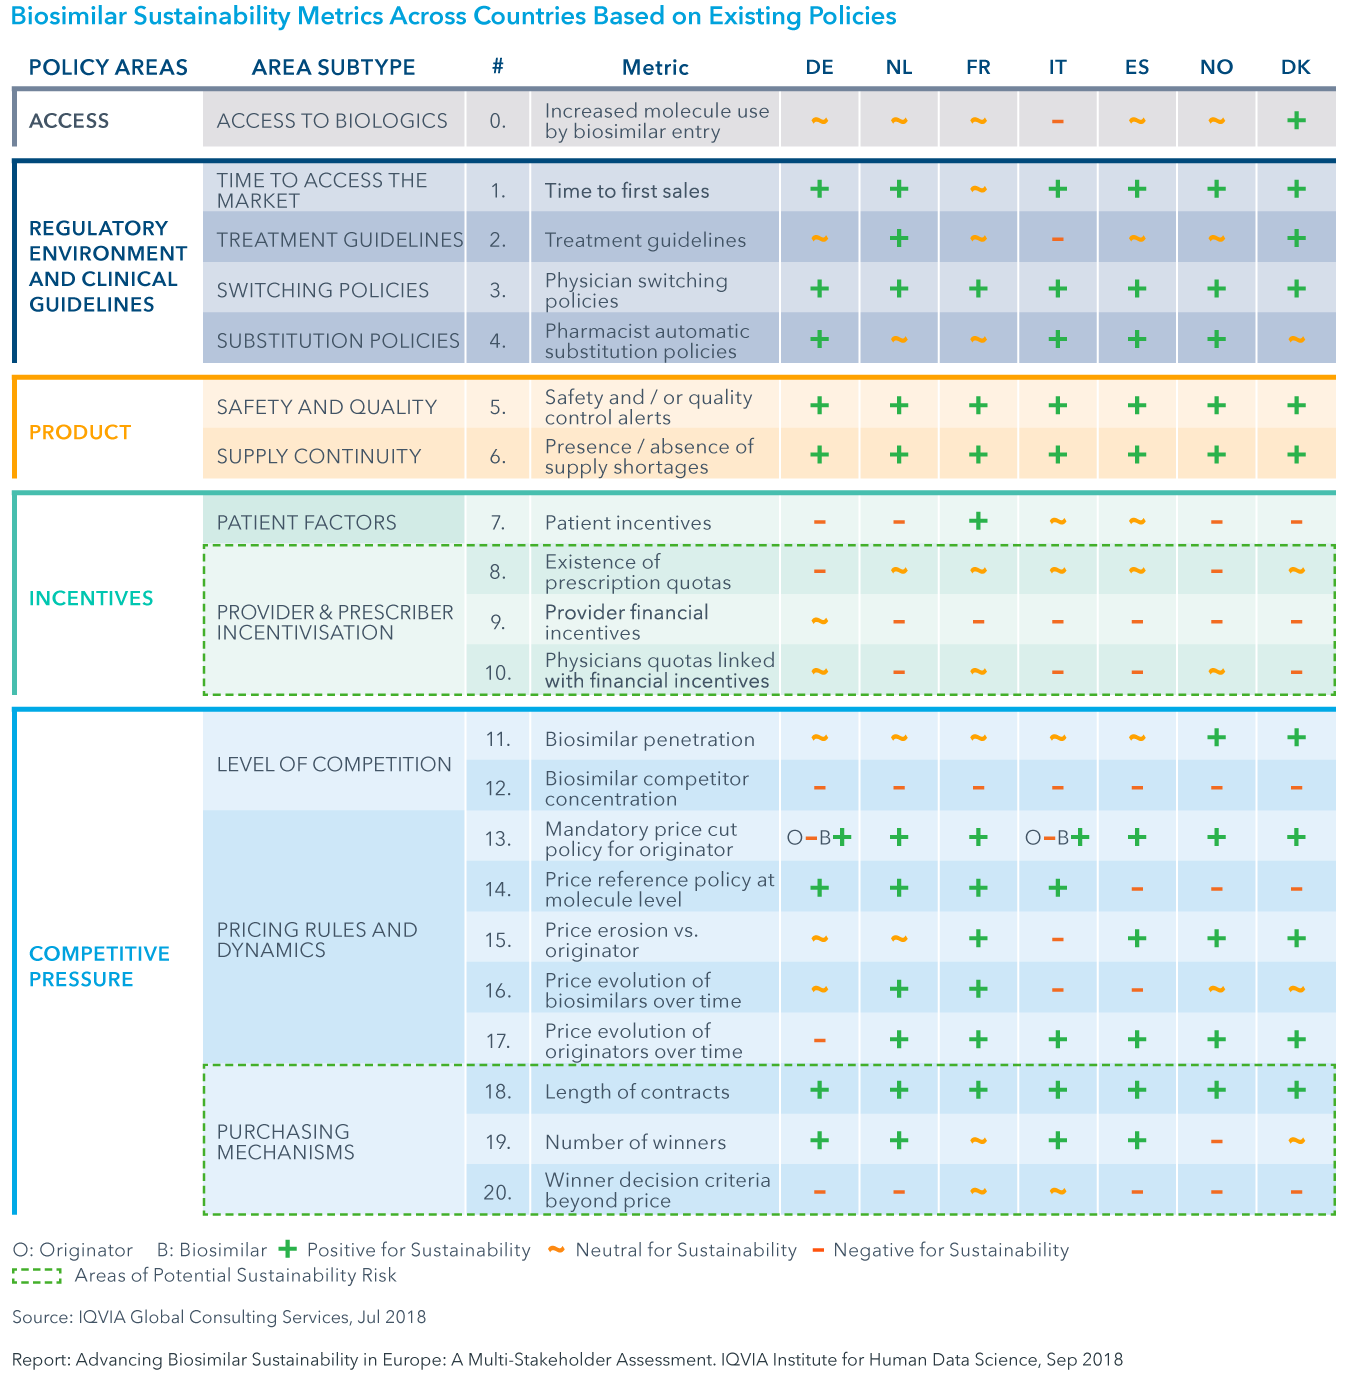 Chart 18: Biosimilar Sustainability Metrics Across Countries Based on Existing Policies